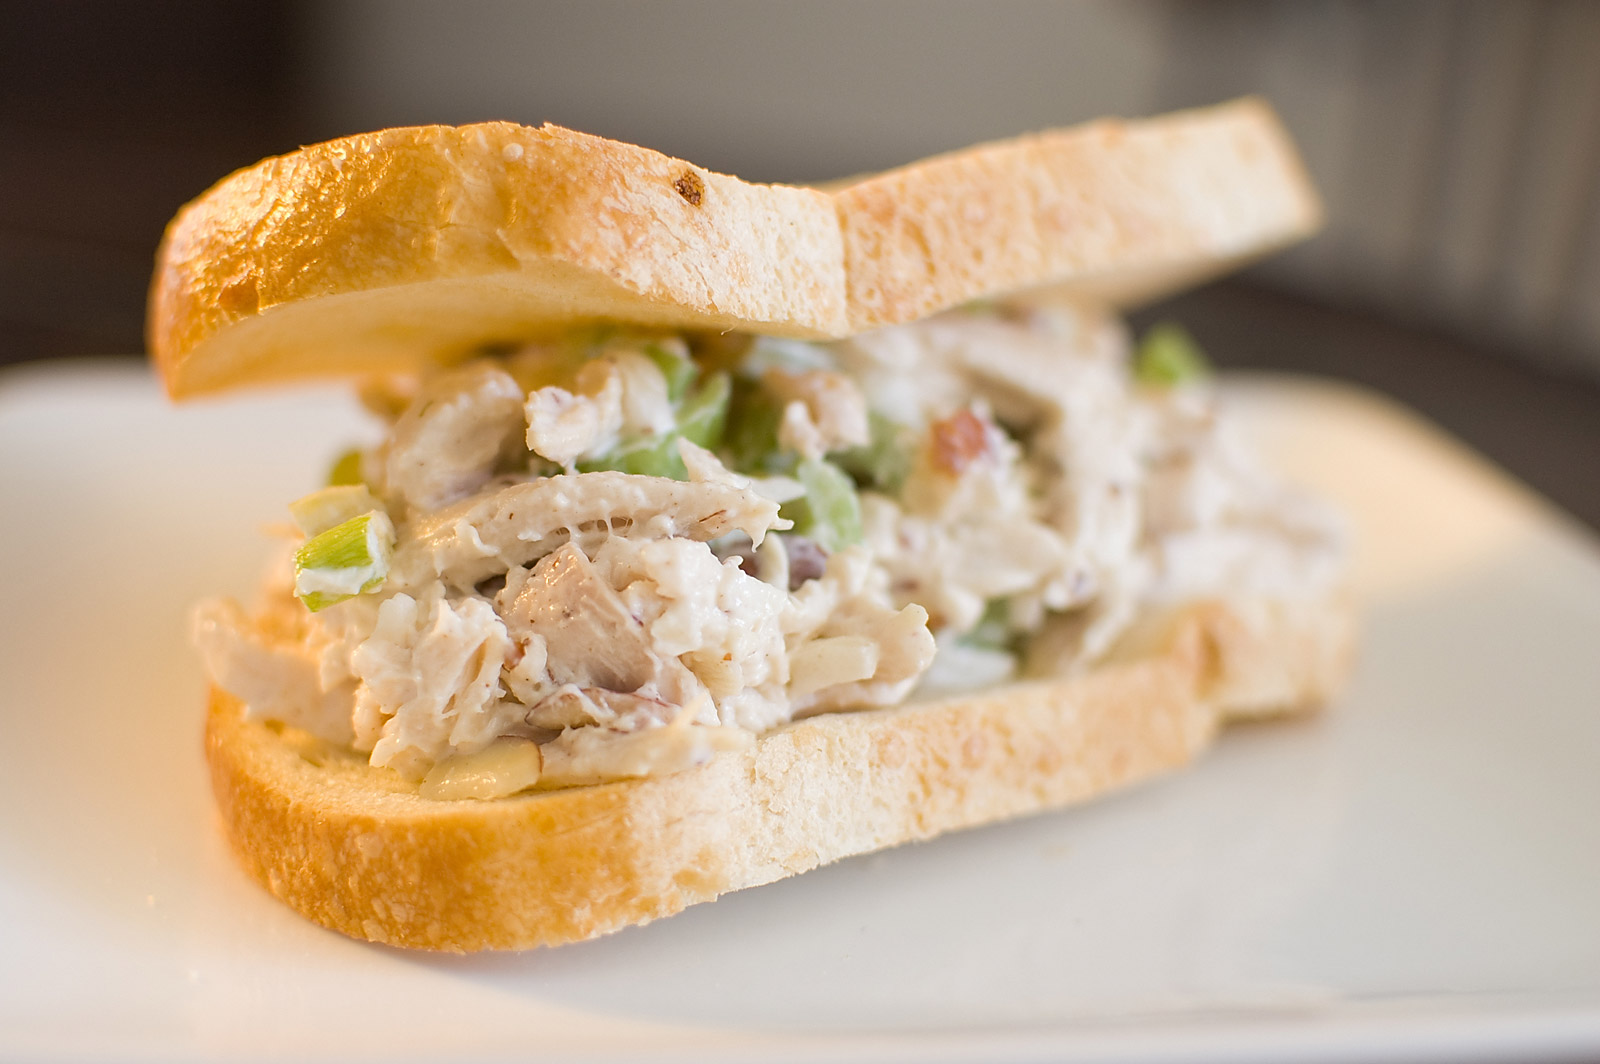 ... Chicken Salad Sandwich Chicken Salad Recipe Sandwich Recipe Chick Wrap